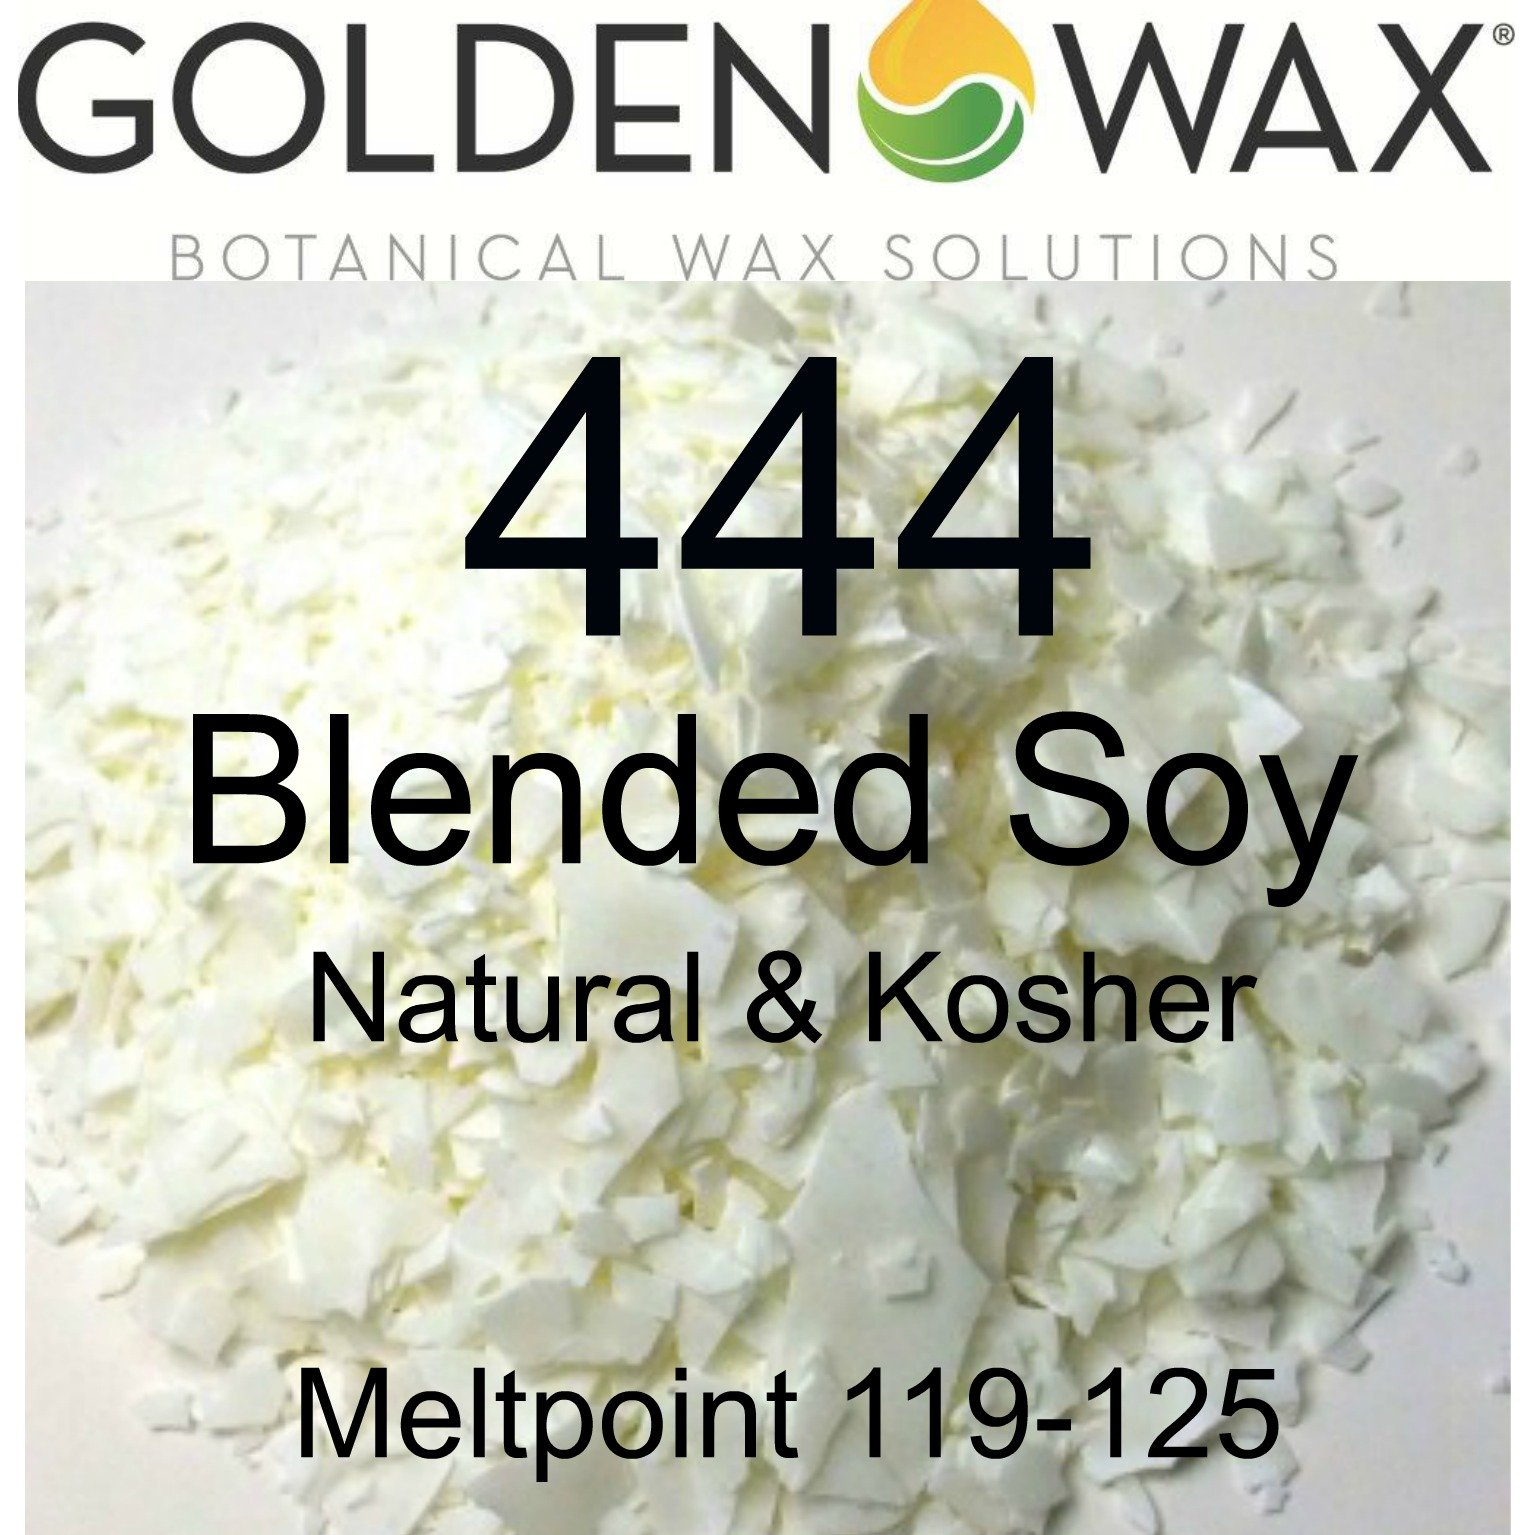 Pack of 1, 50 Lb Golden Brands Gw444 Soy Container Wax Blend for Candle, Paraffin, Beeswax Or Lotions, Creams, Lip Balms